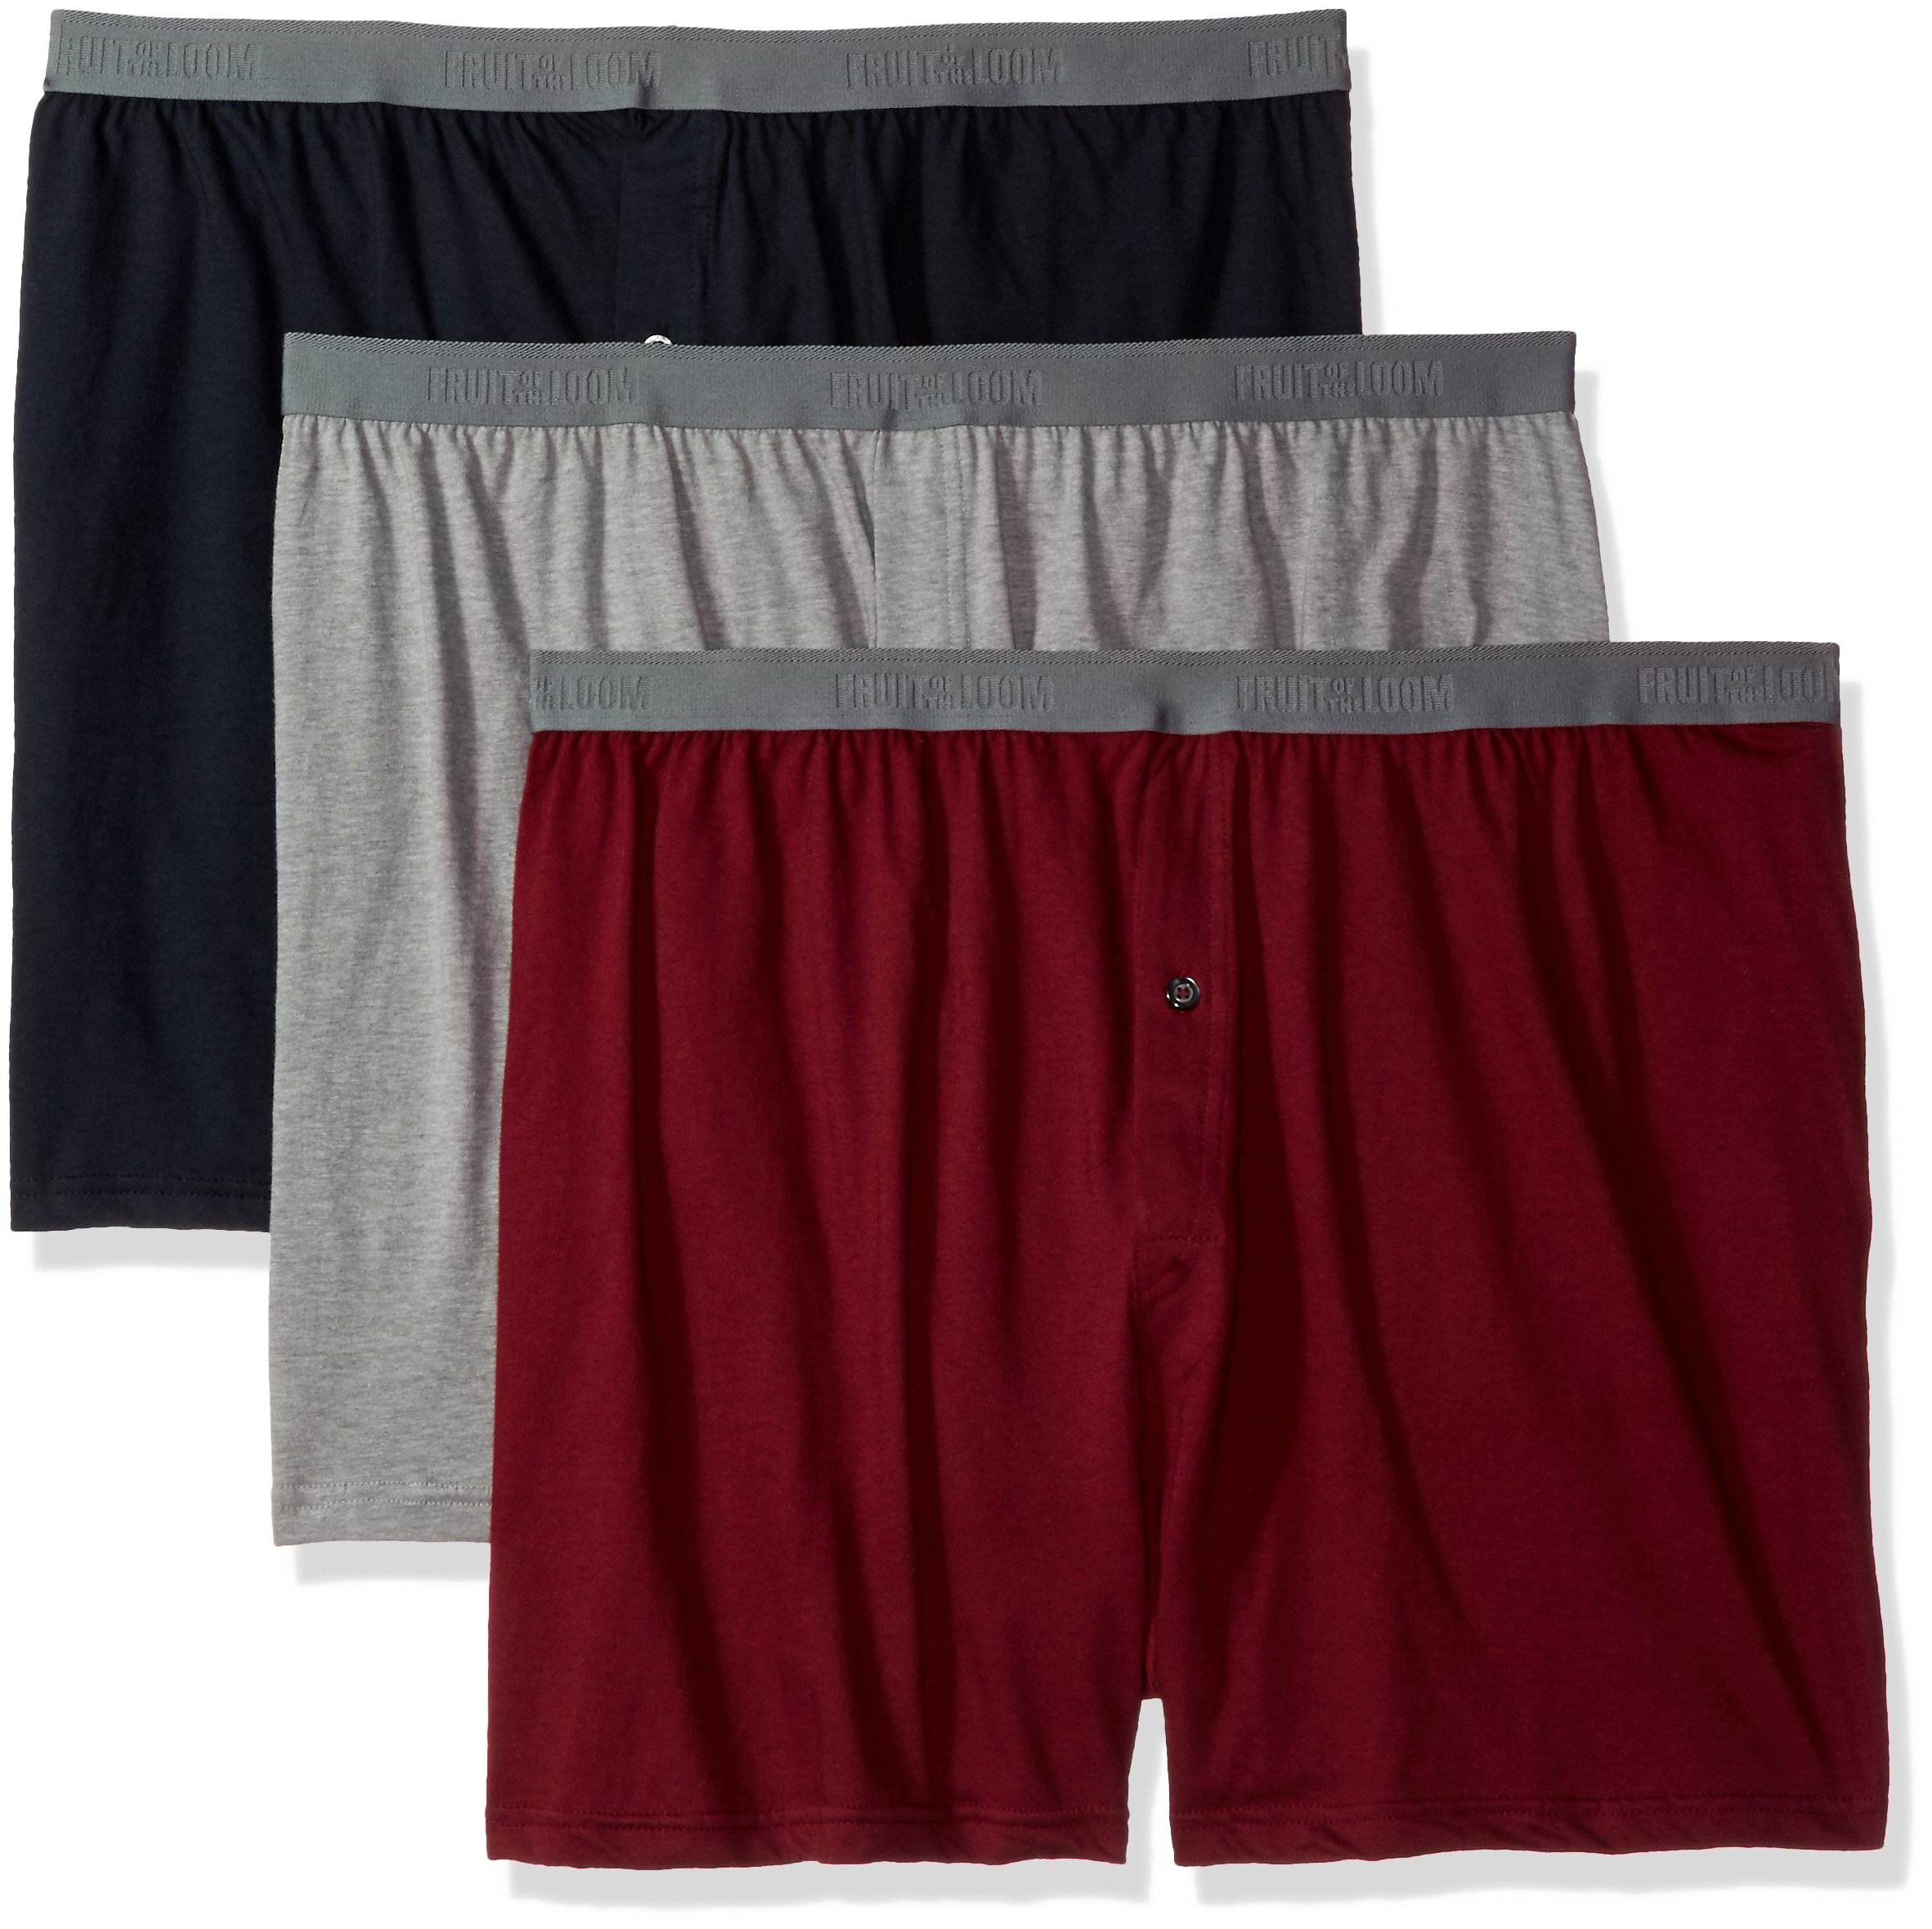 Fruit of the Loom Men's 3-Pack Premium Man Knit Boxer, Assorted, 4X-Large Big